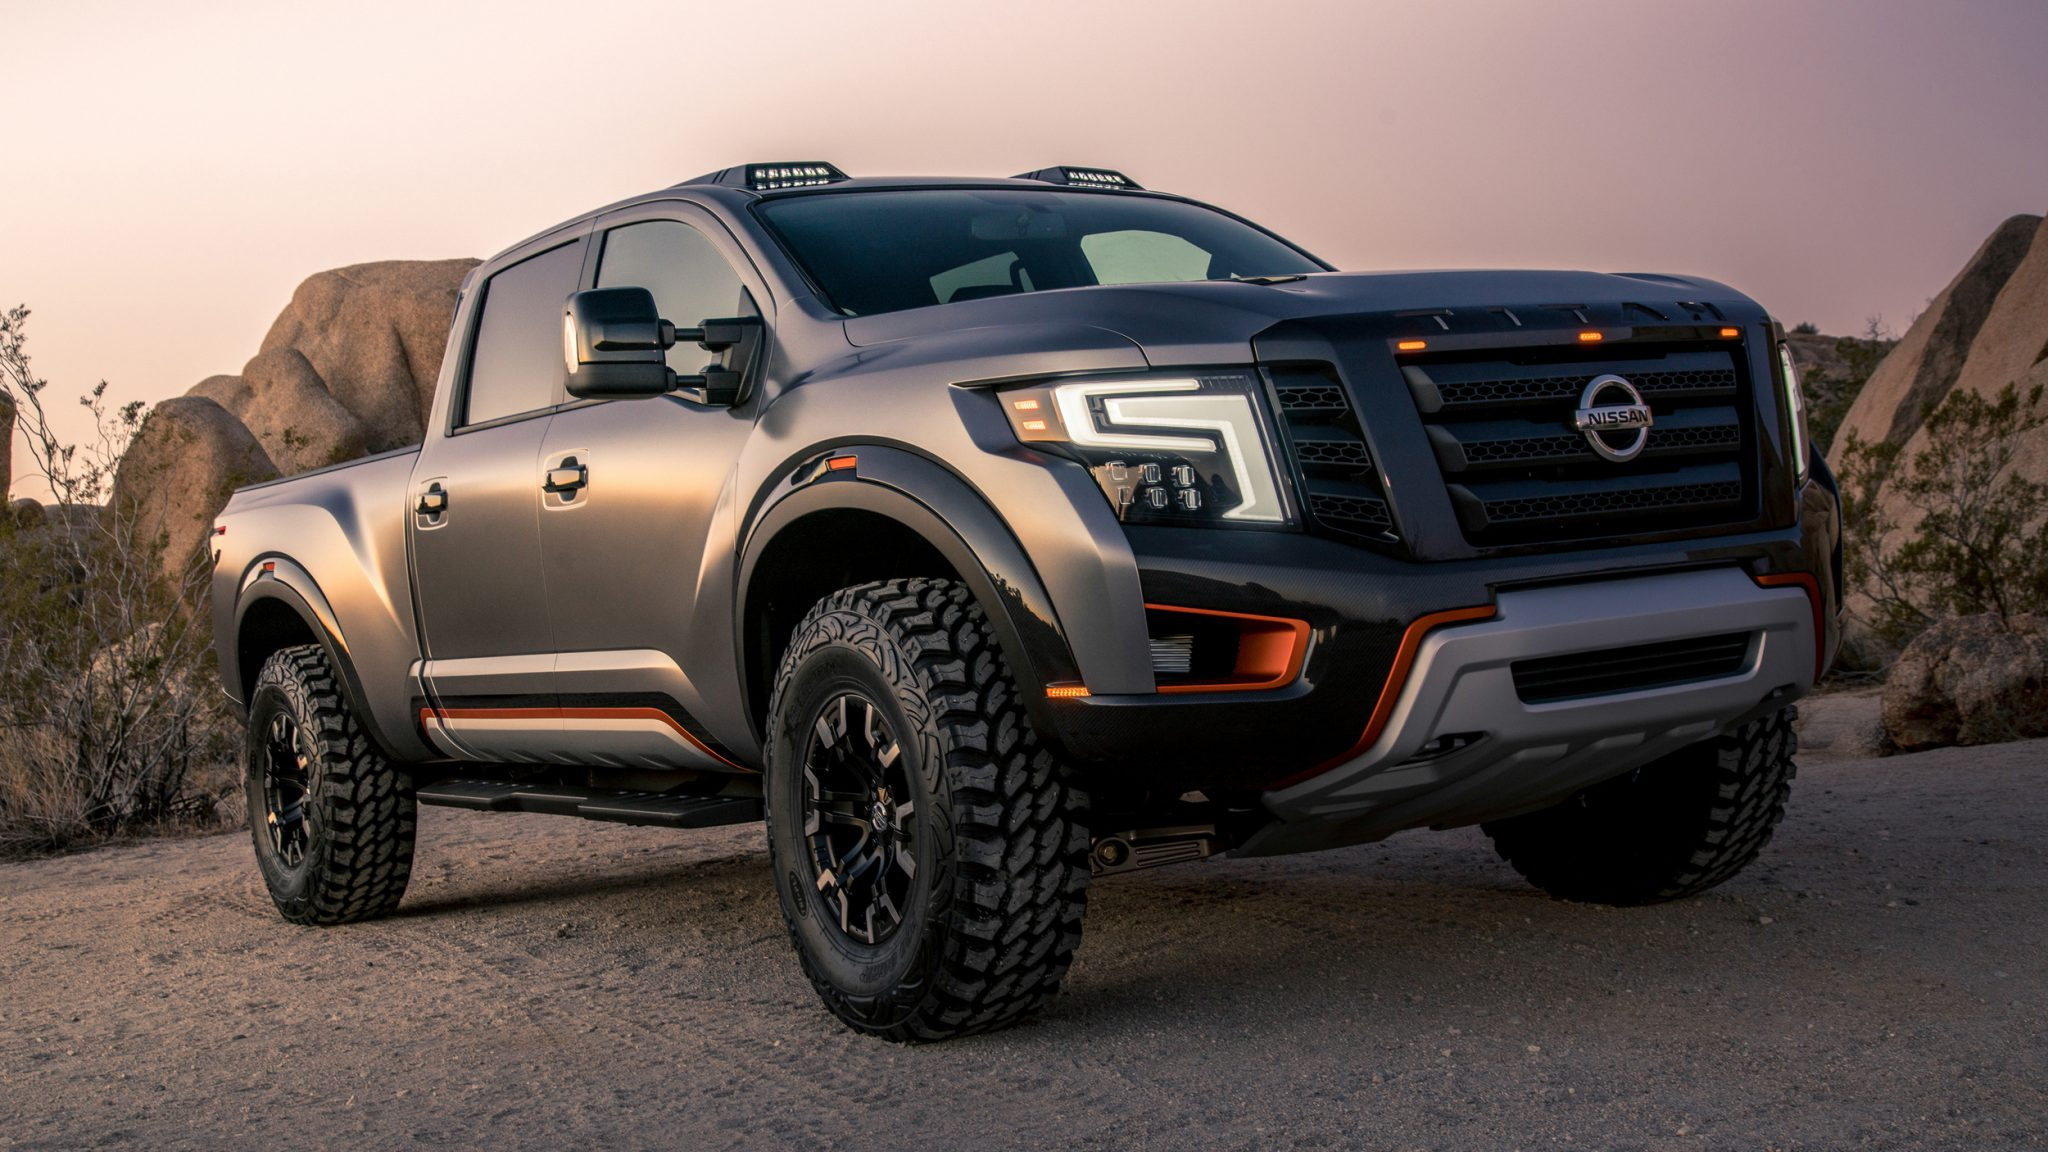 Nissan Warrior Concept Photo: topspeed